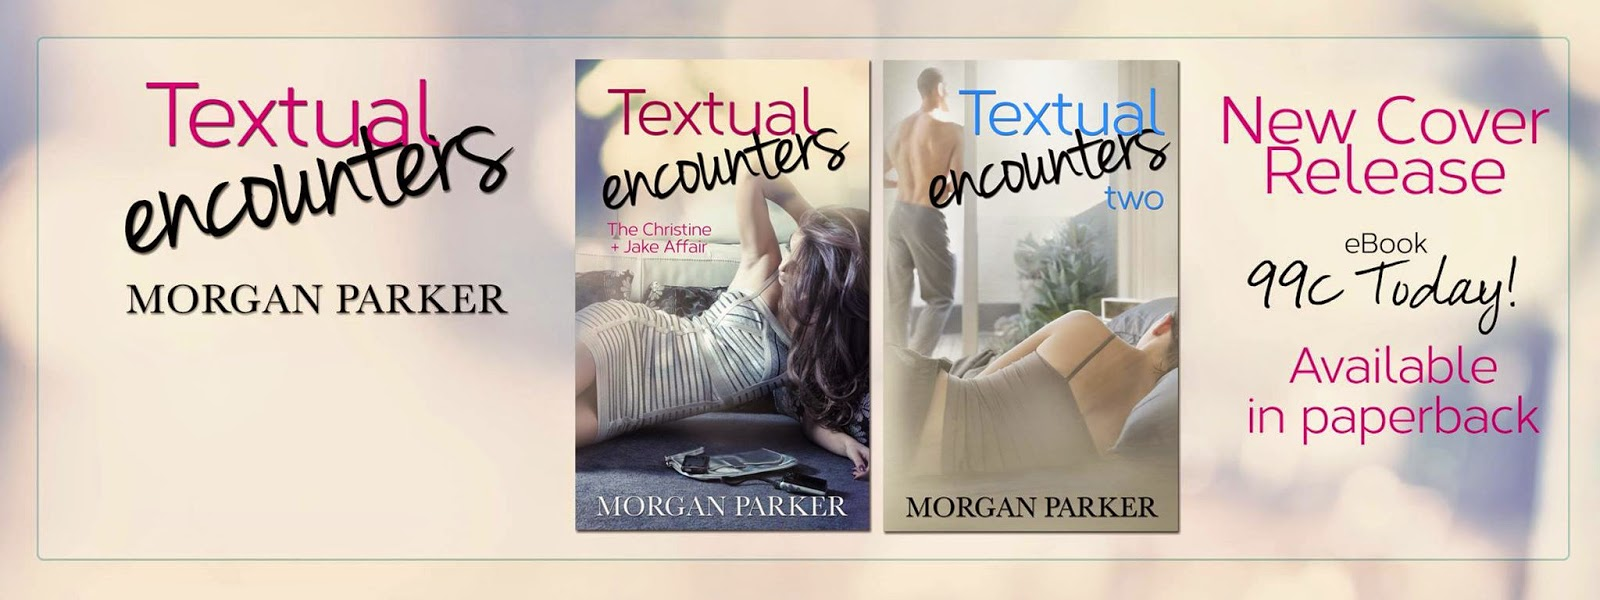 Textual Encounters (The Christine + Jake Affair)